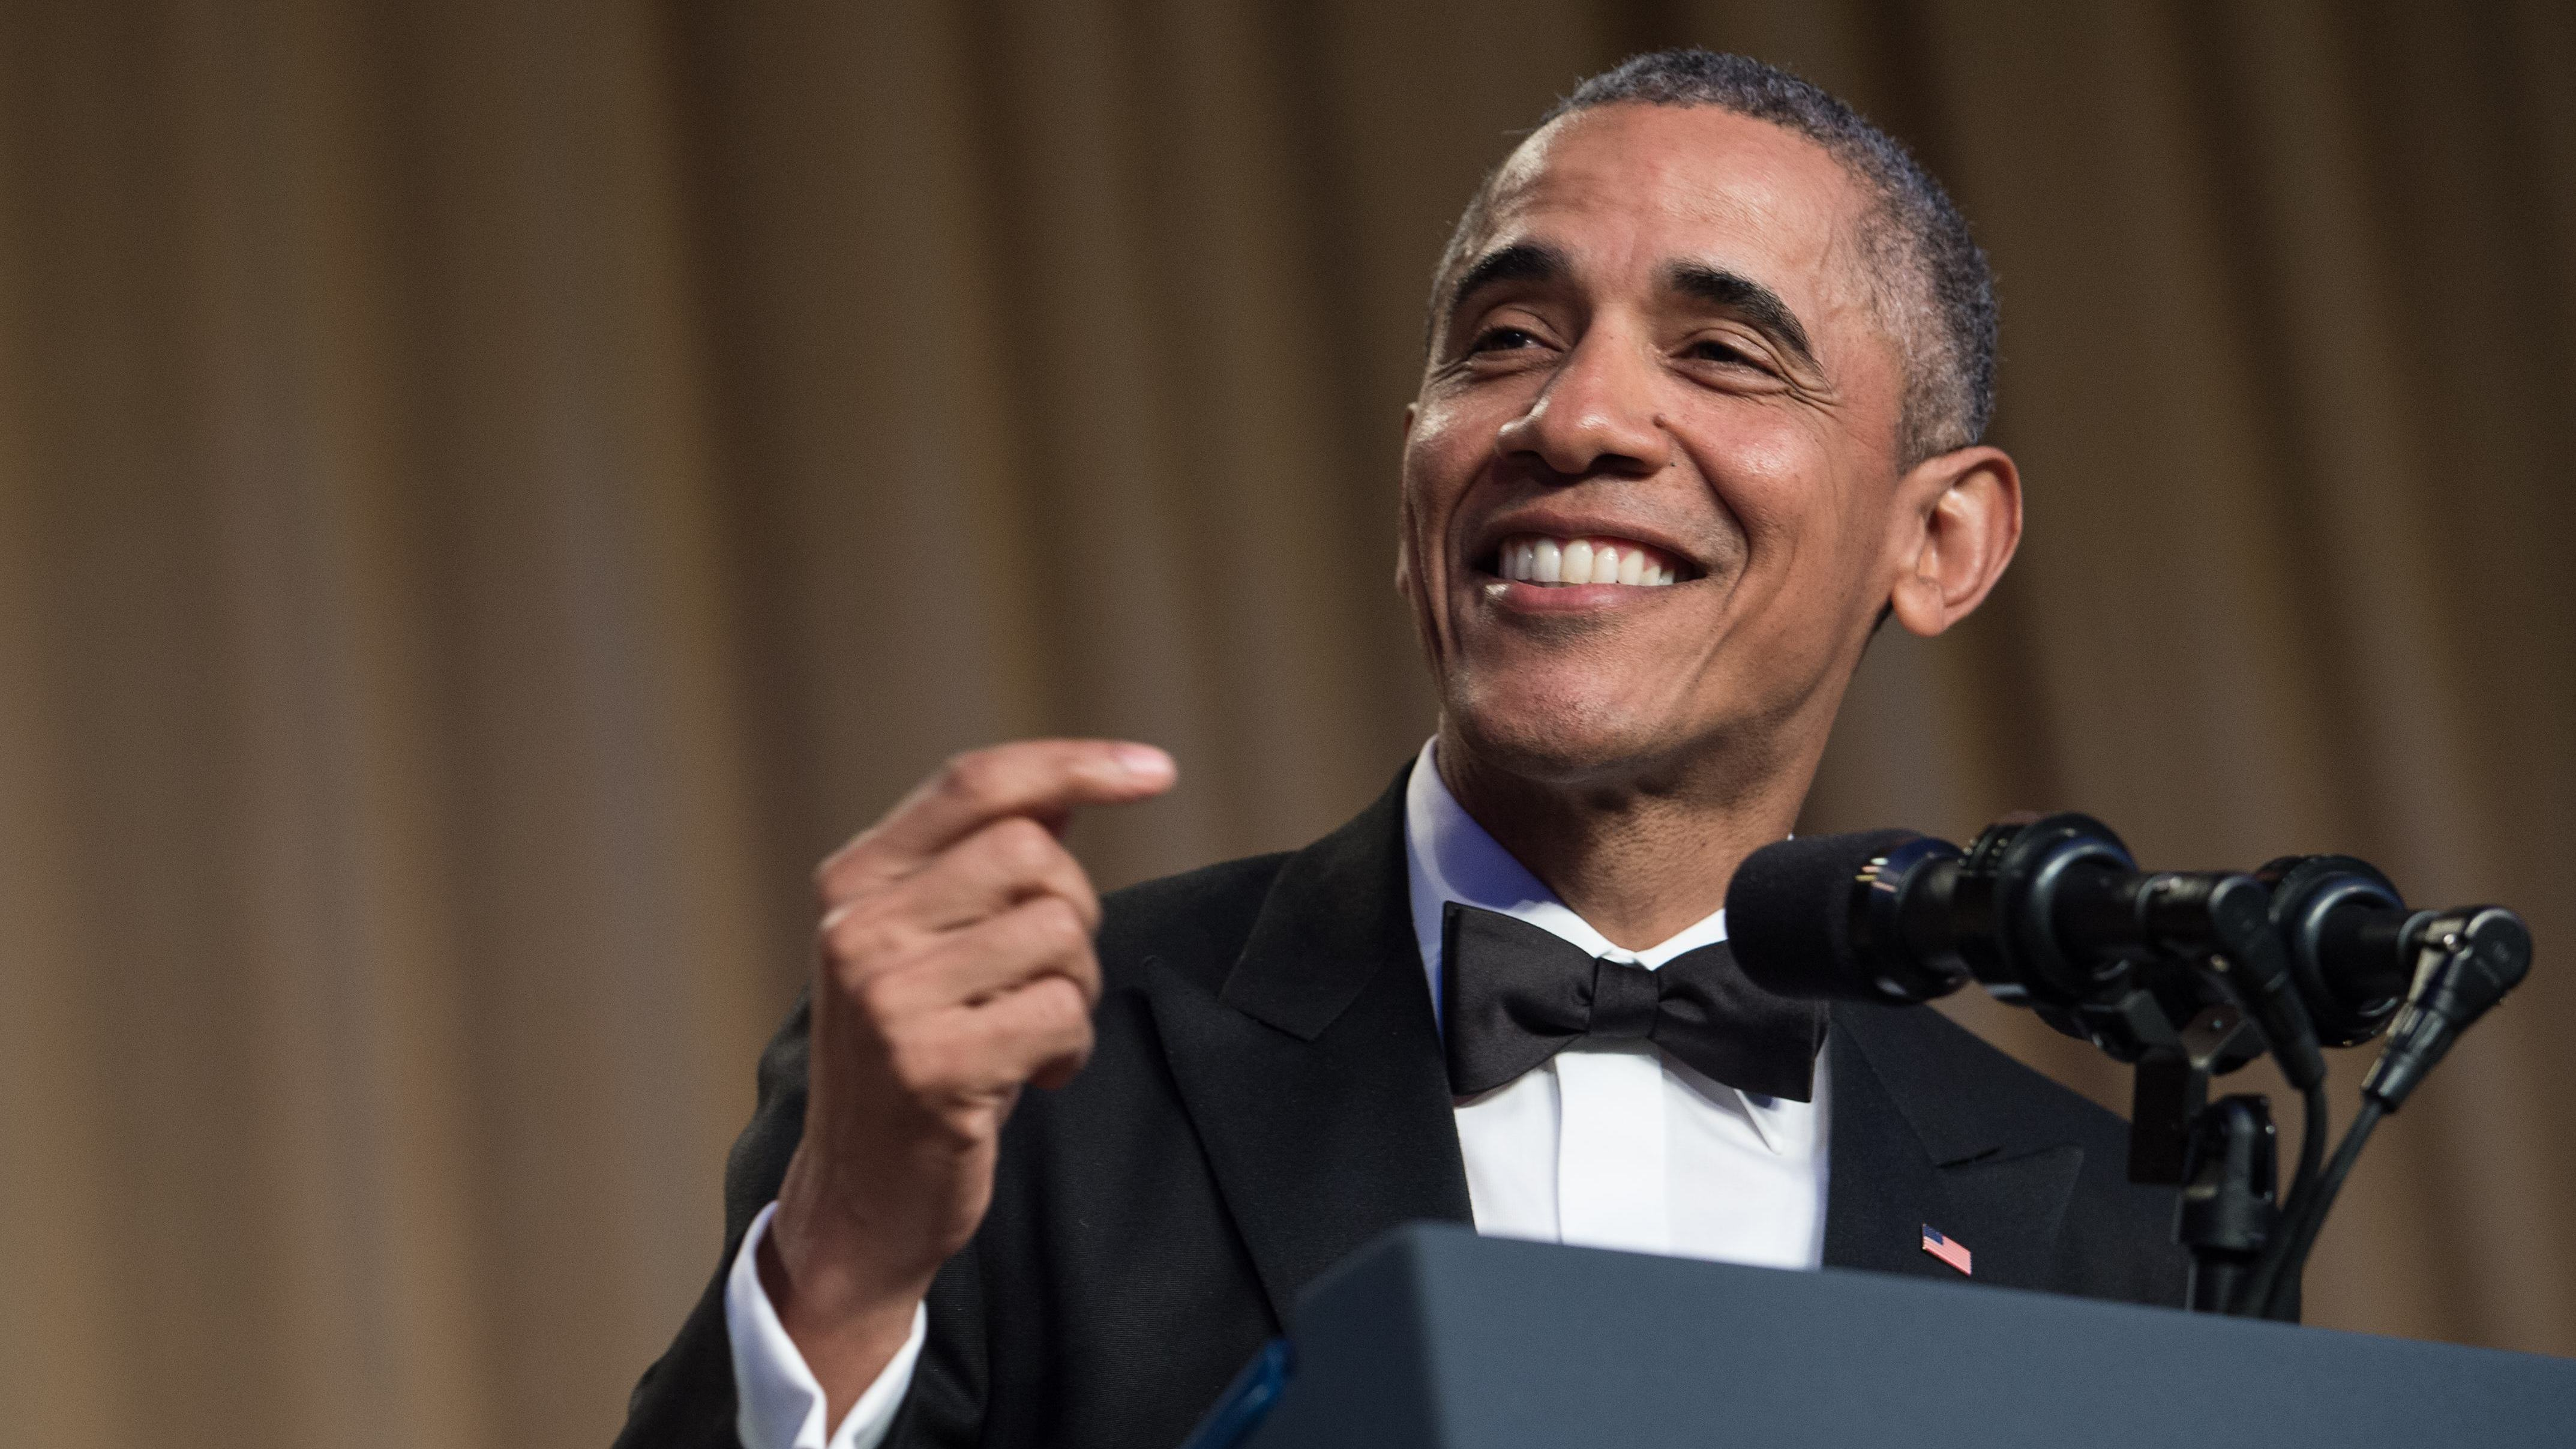 President Obama Has His Last Laughs At 2016 WHCD